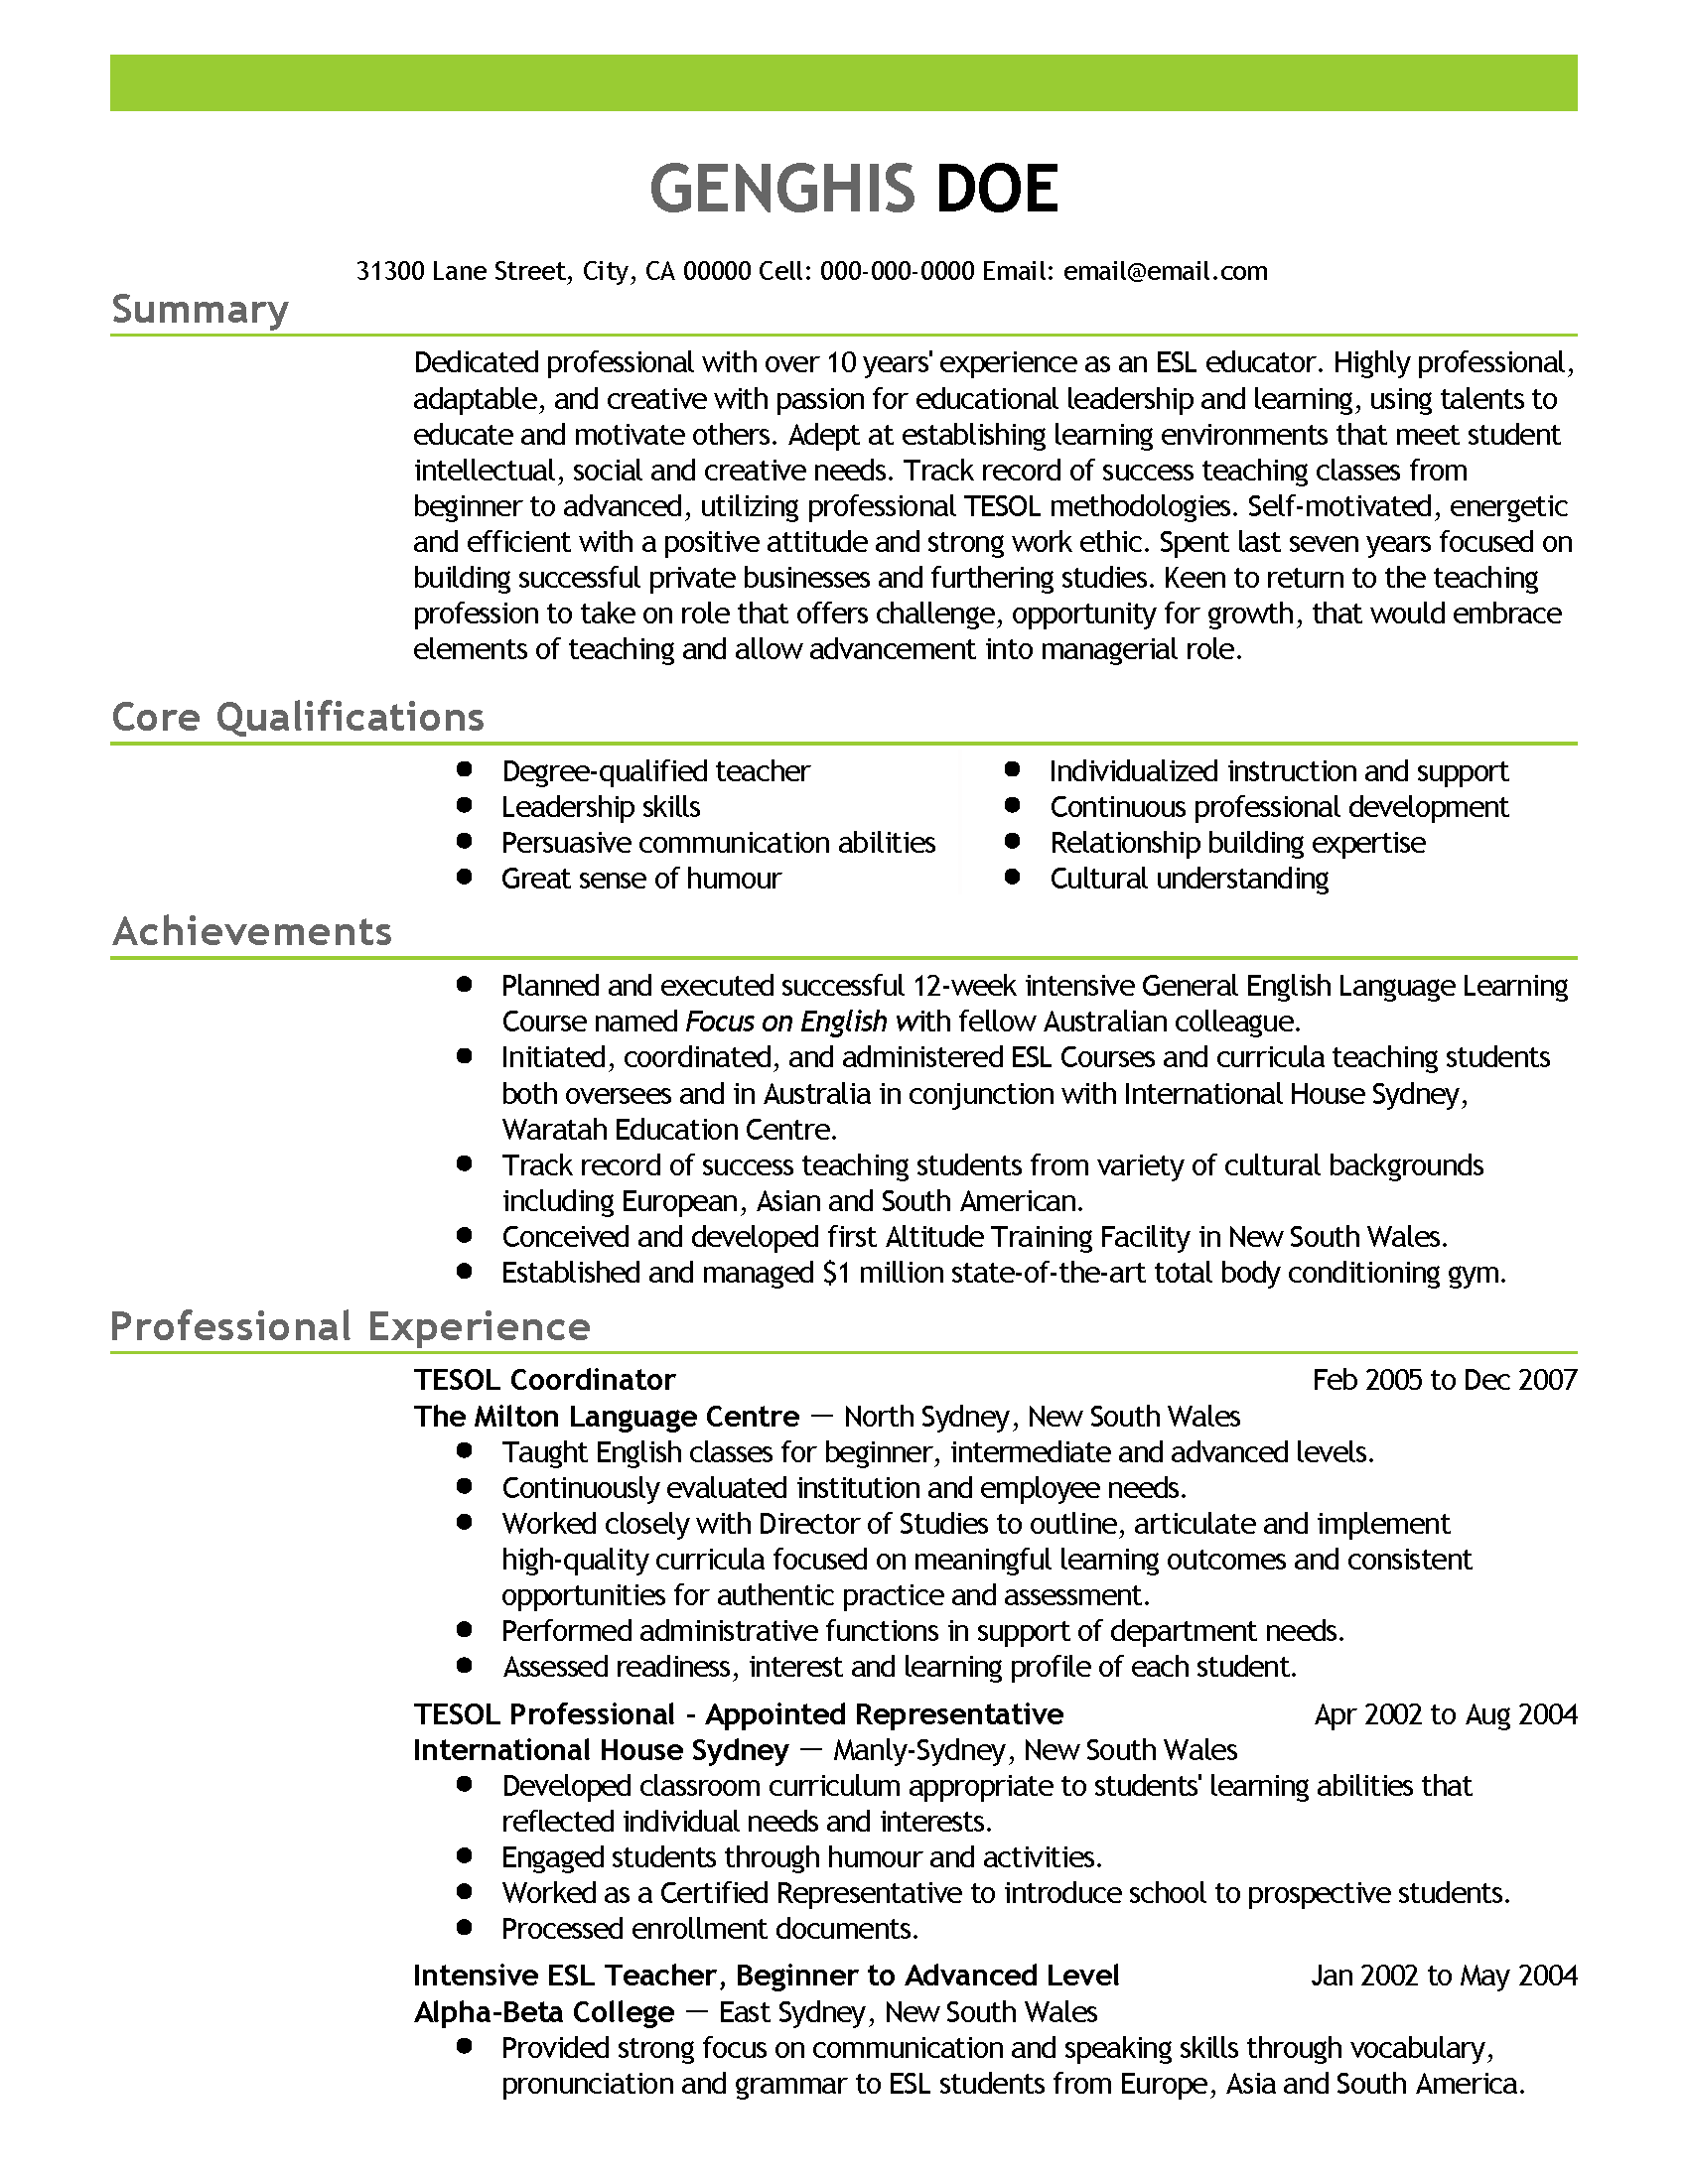 Esl Resume Sample Cover Letter Free Jobs And Professions